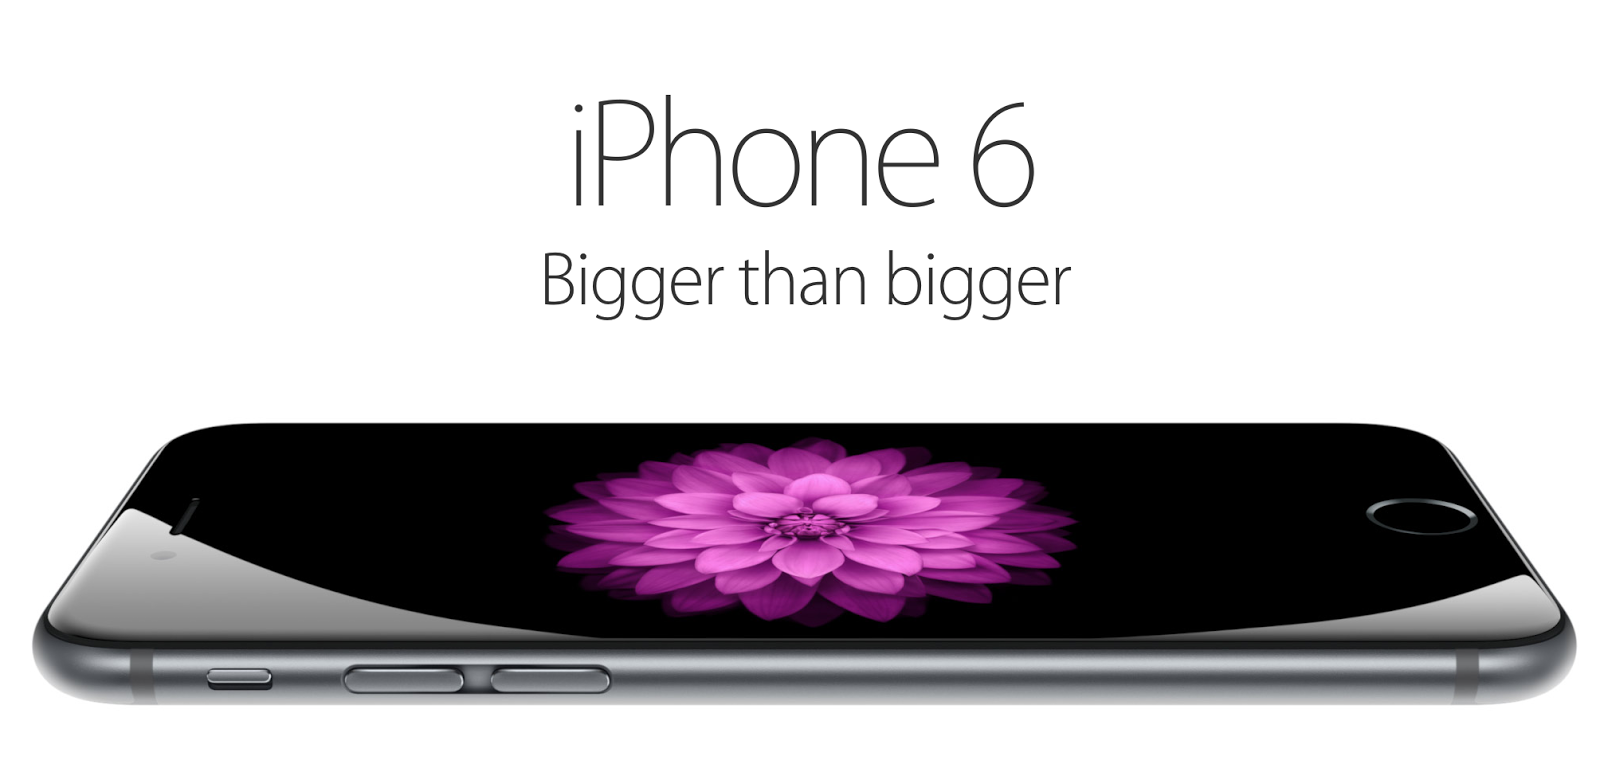 New Apple ad: Introducing iPhone 6 and iPhone 6 Plus